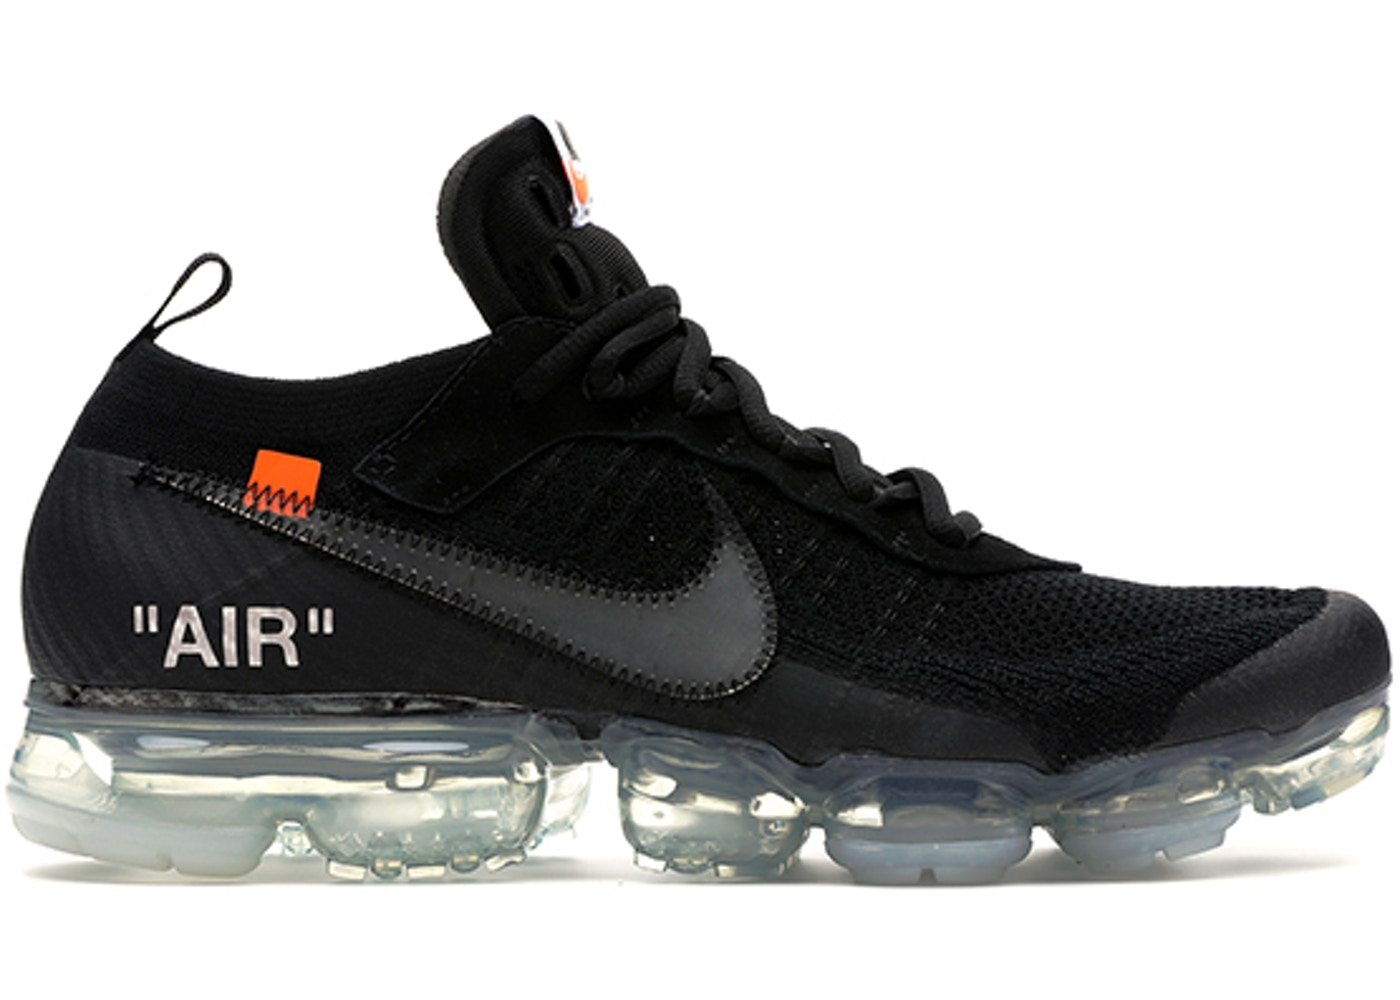 970c2cdceee Air VaporMax Off-White Black - AA3831-002